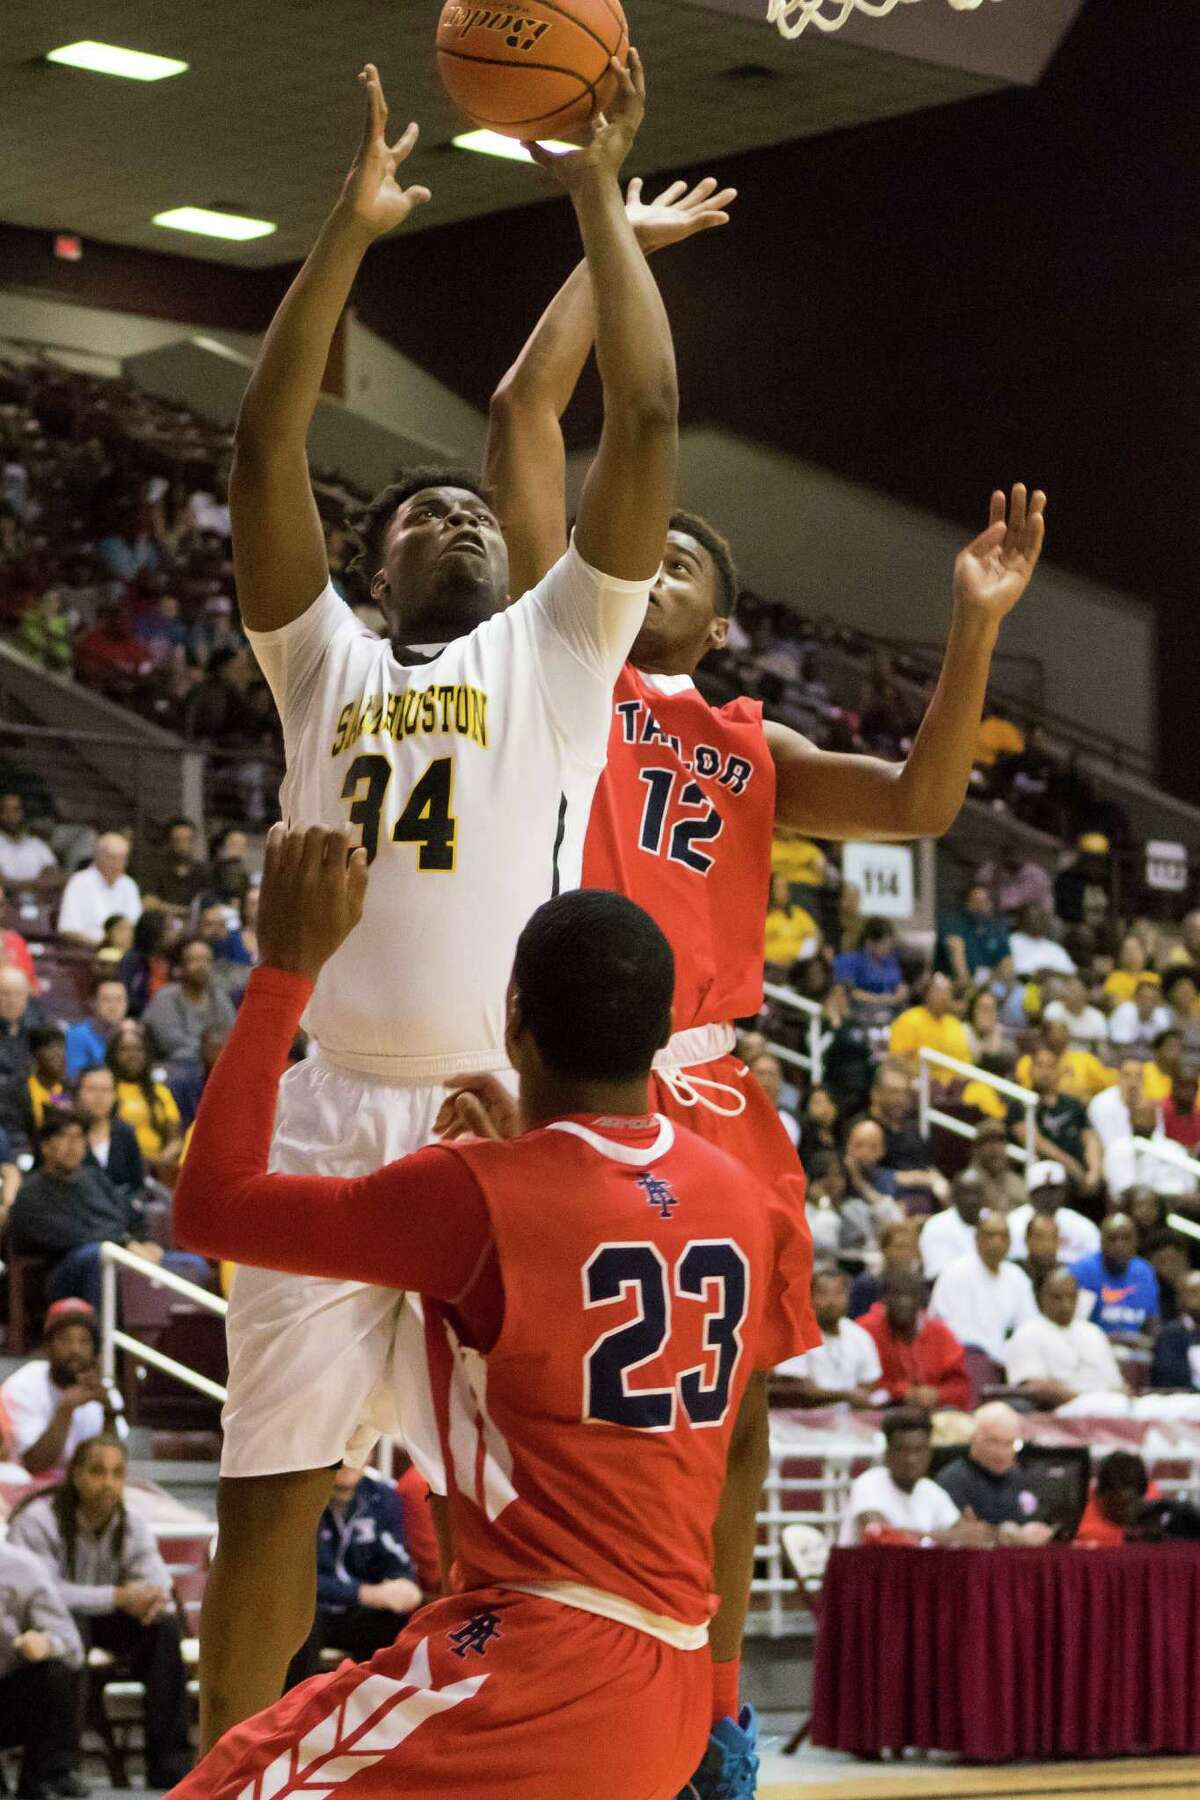 Sam Houston Tigers' Carlton Prejean (34) goes for a lay up against Alief Taylor in the Class 6A Boys Basketball Region III semifinals at the Campbell Center, Friday, March 4, 2016, in Houston, TX.